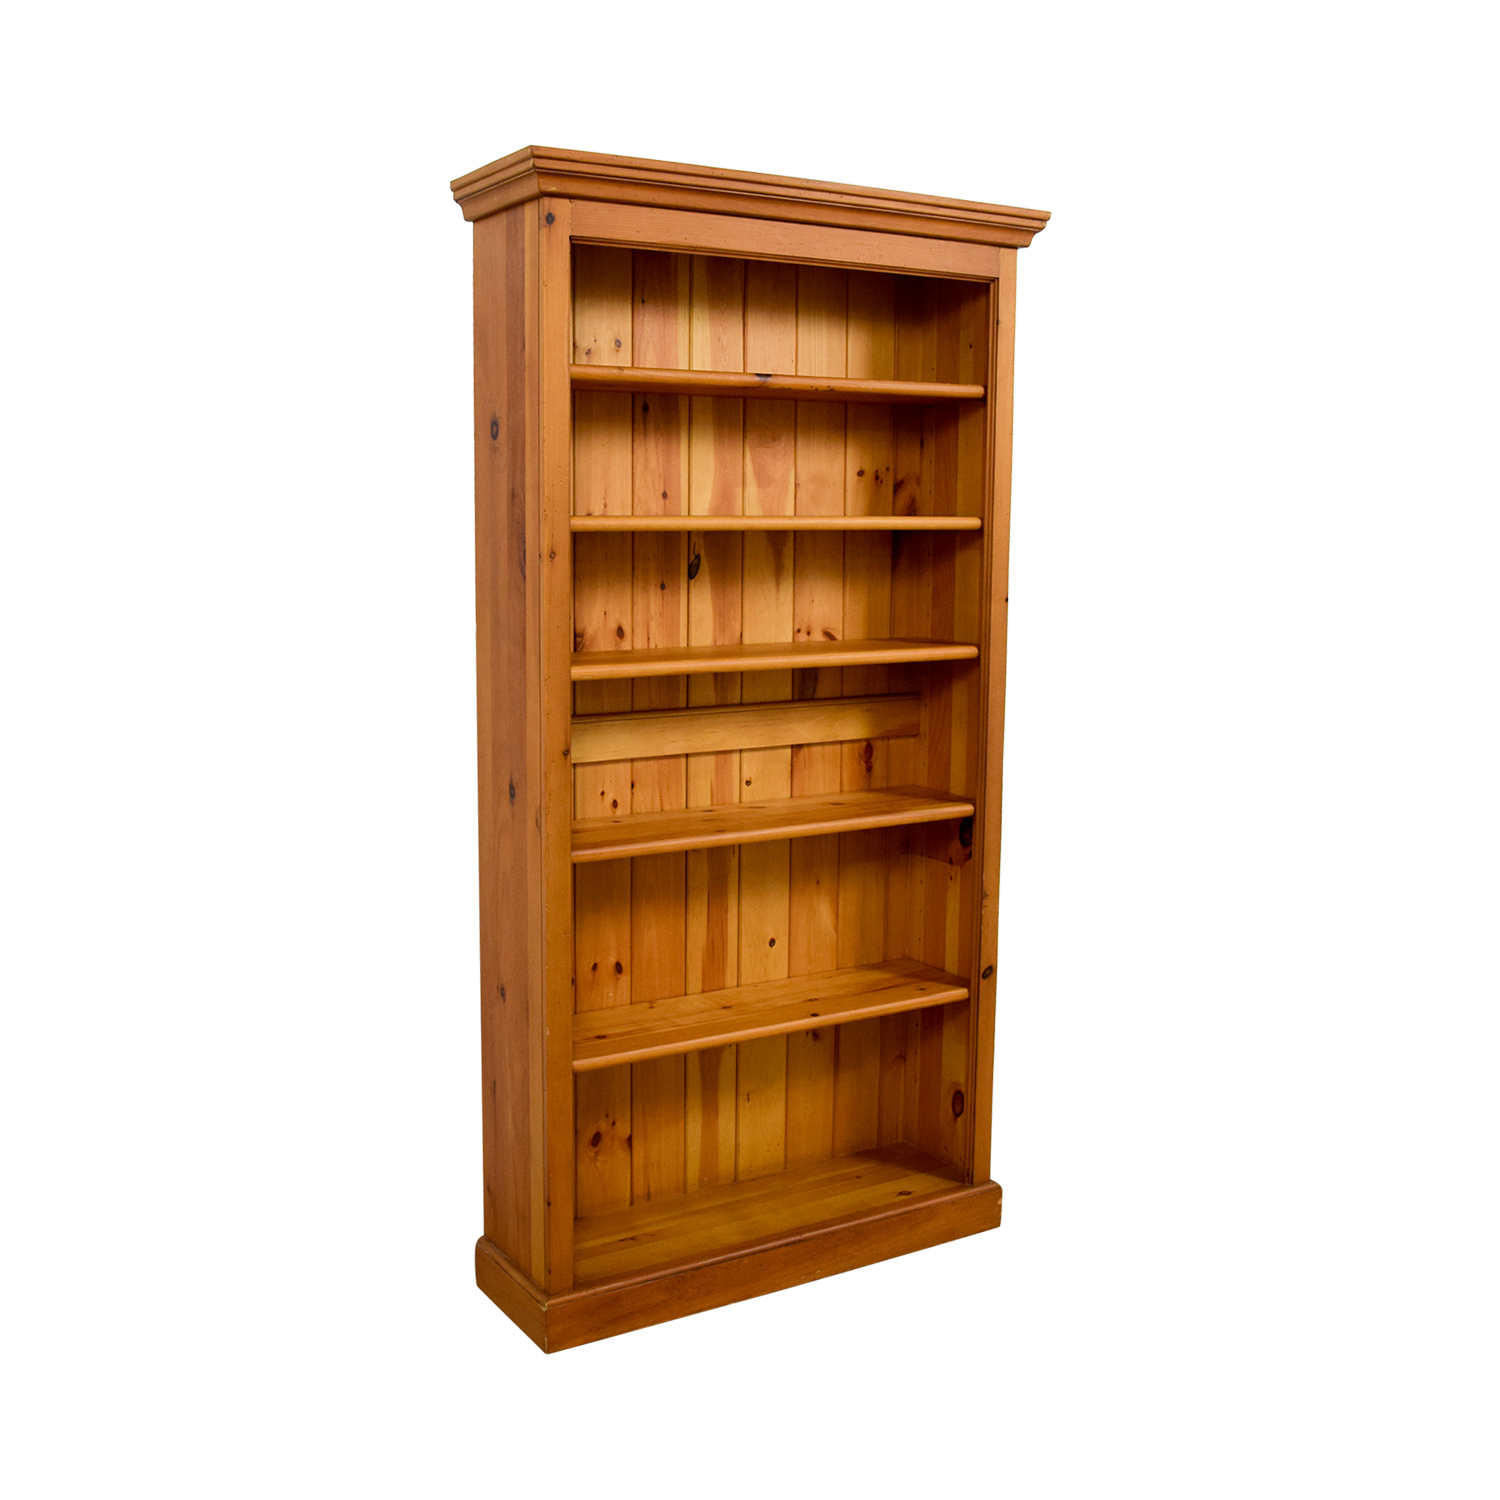 Crate and Barrel Crate & Barrel Walnut Bookcase second hand